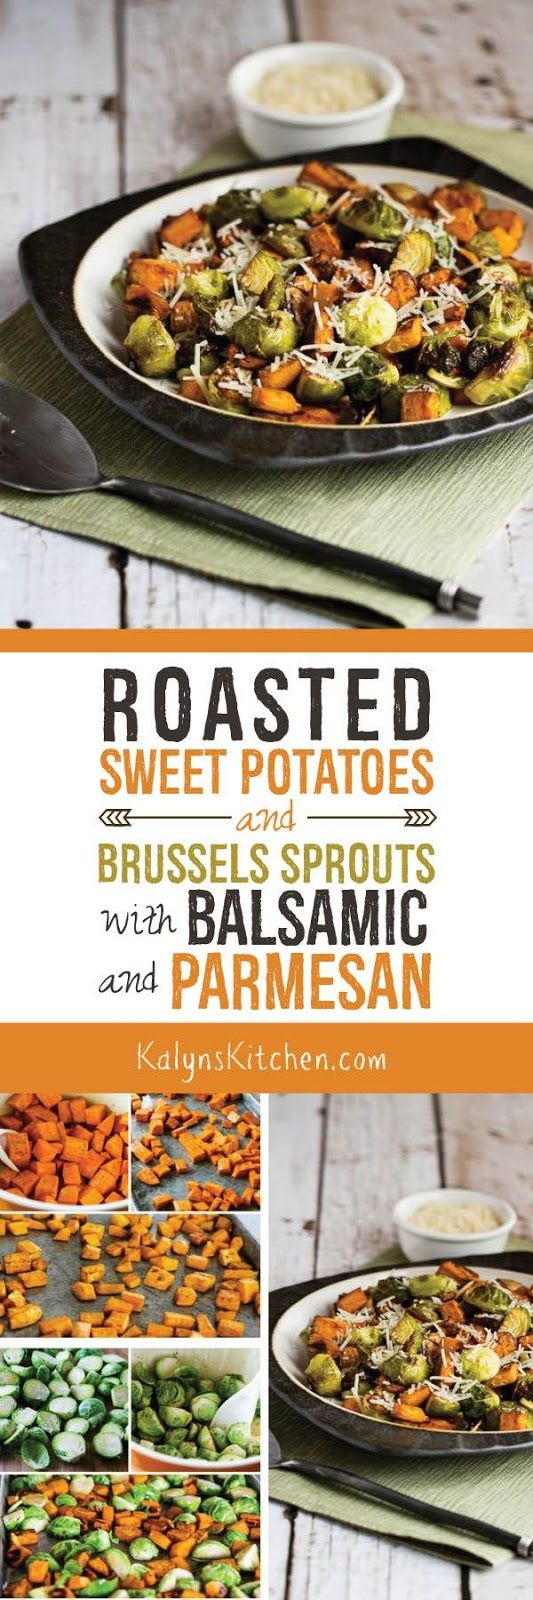 Roasted Sweet Potatoes and Brussels Sprouts with Balsamic and Parmesan ...